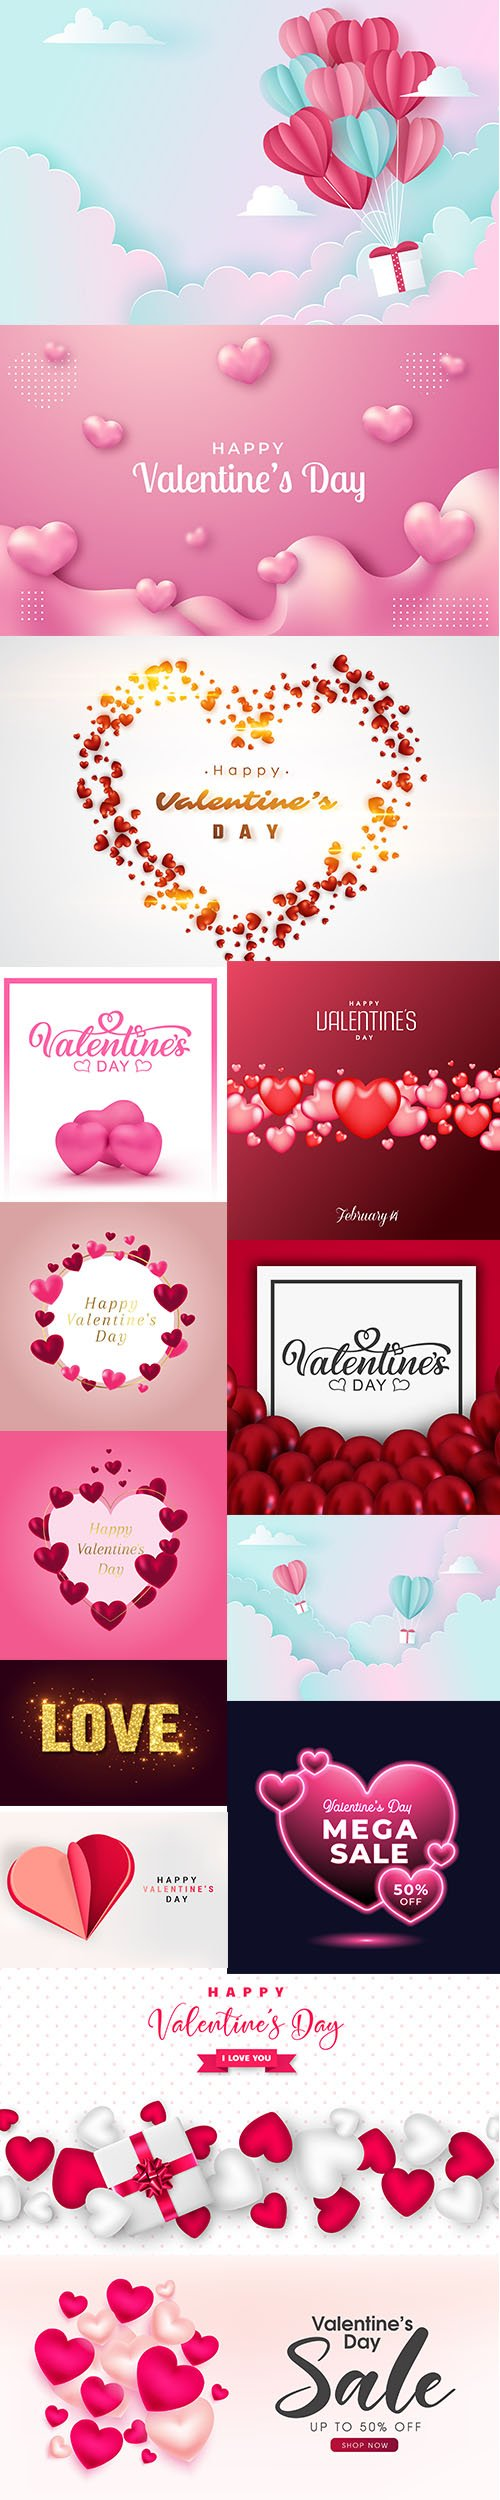 Set of Romantic Valentines Day Illustrations